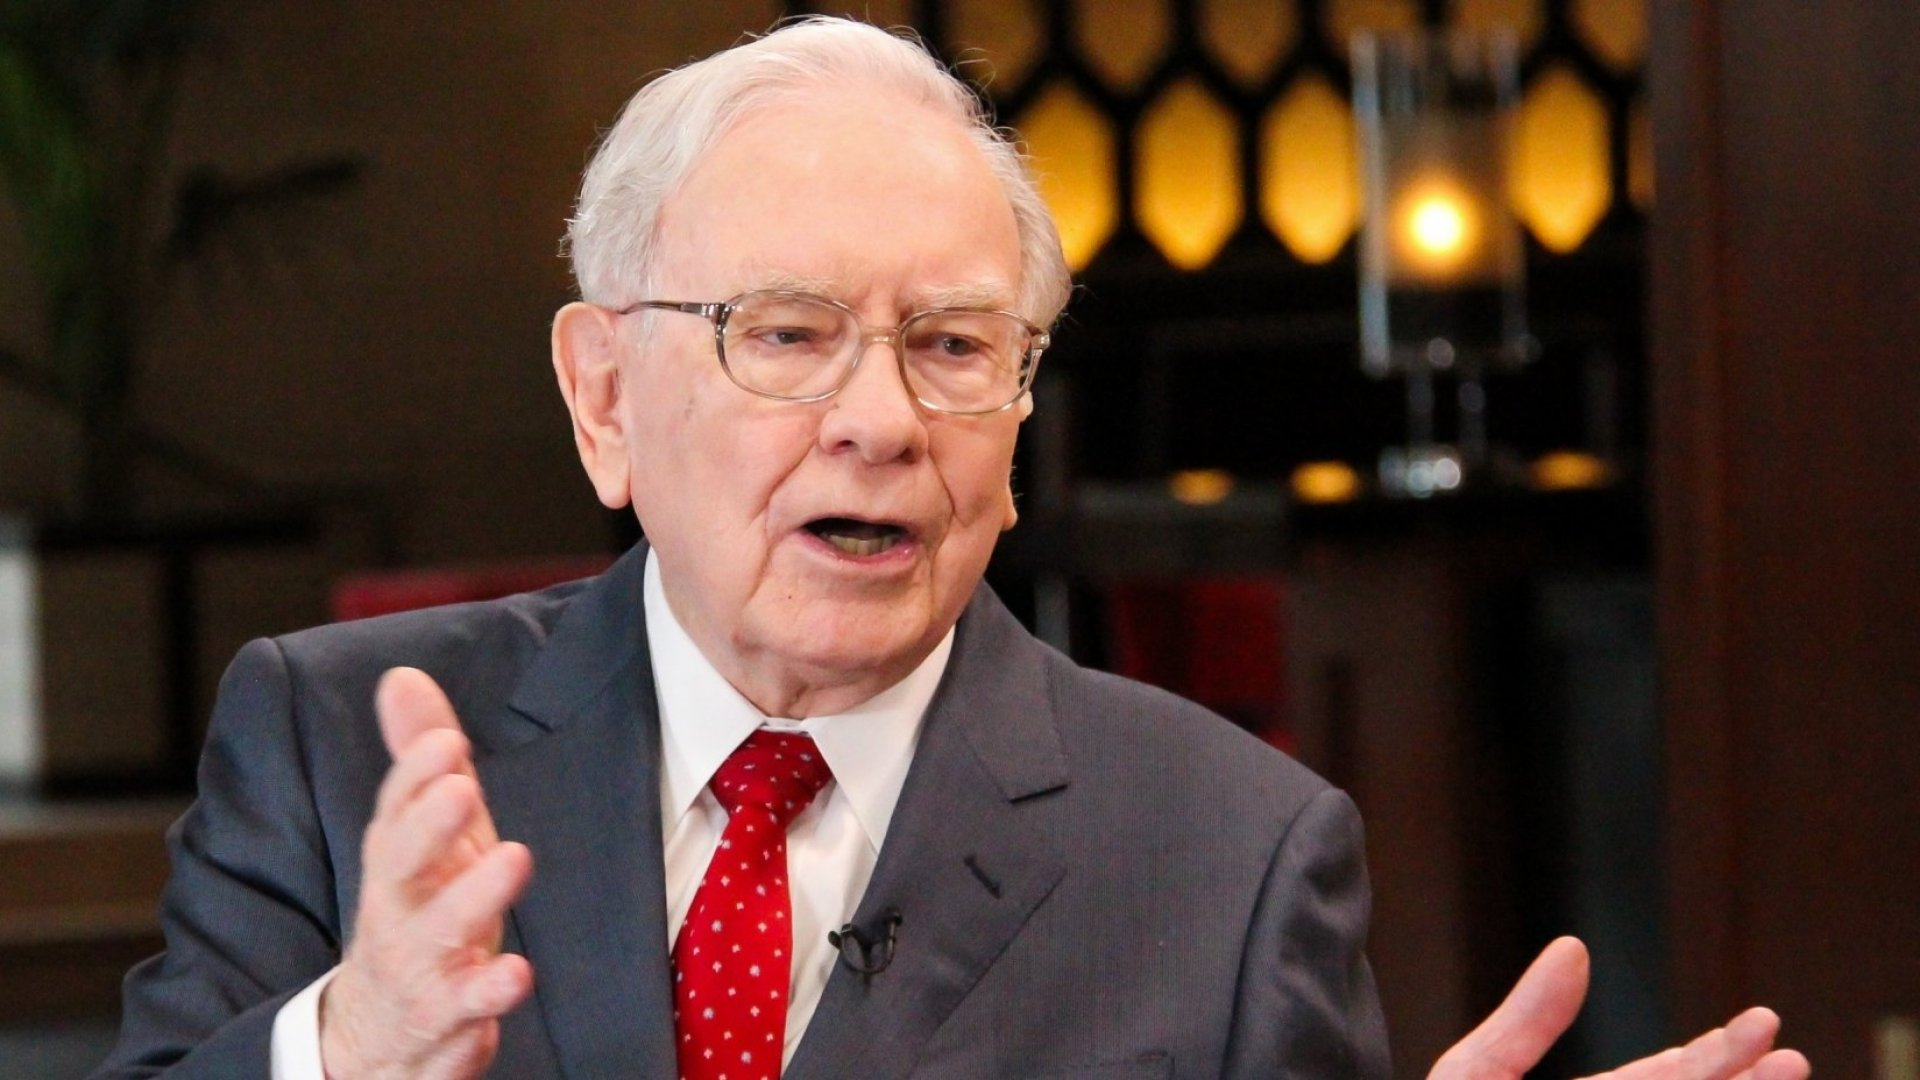 Warren Buffett Just Donated Nearly $3 Billion